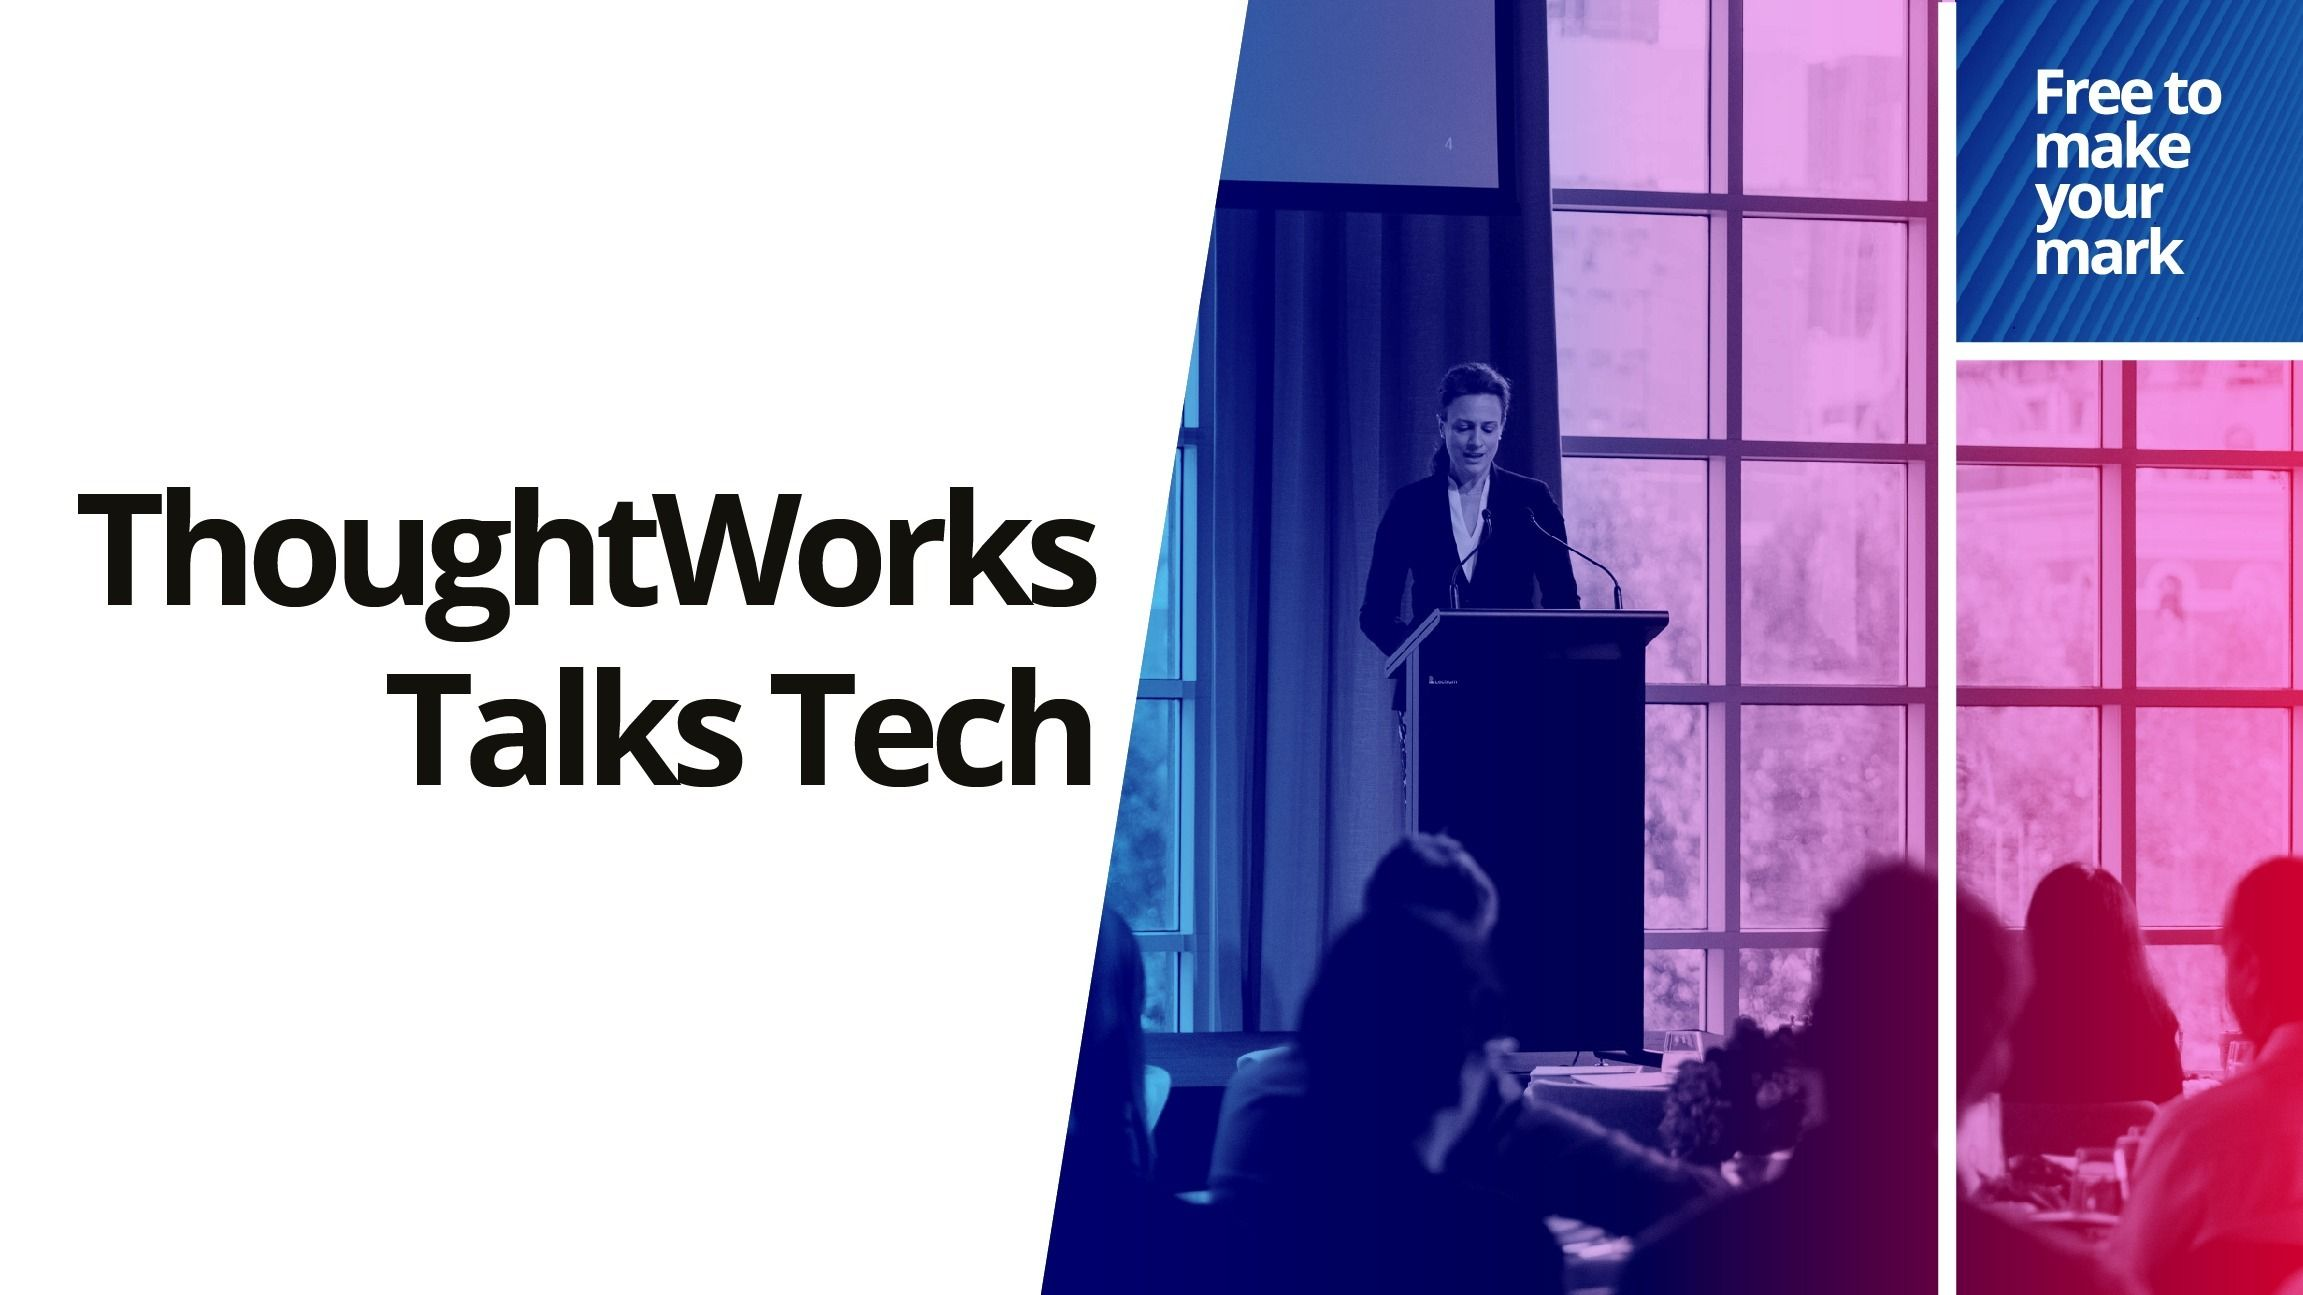 ThoughtWorks Talks Tech